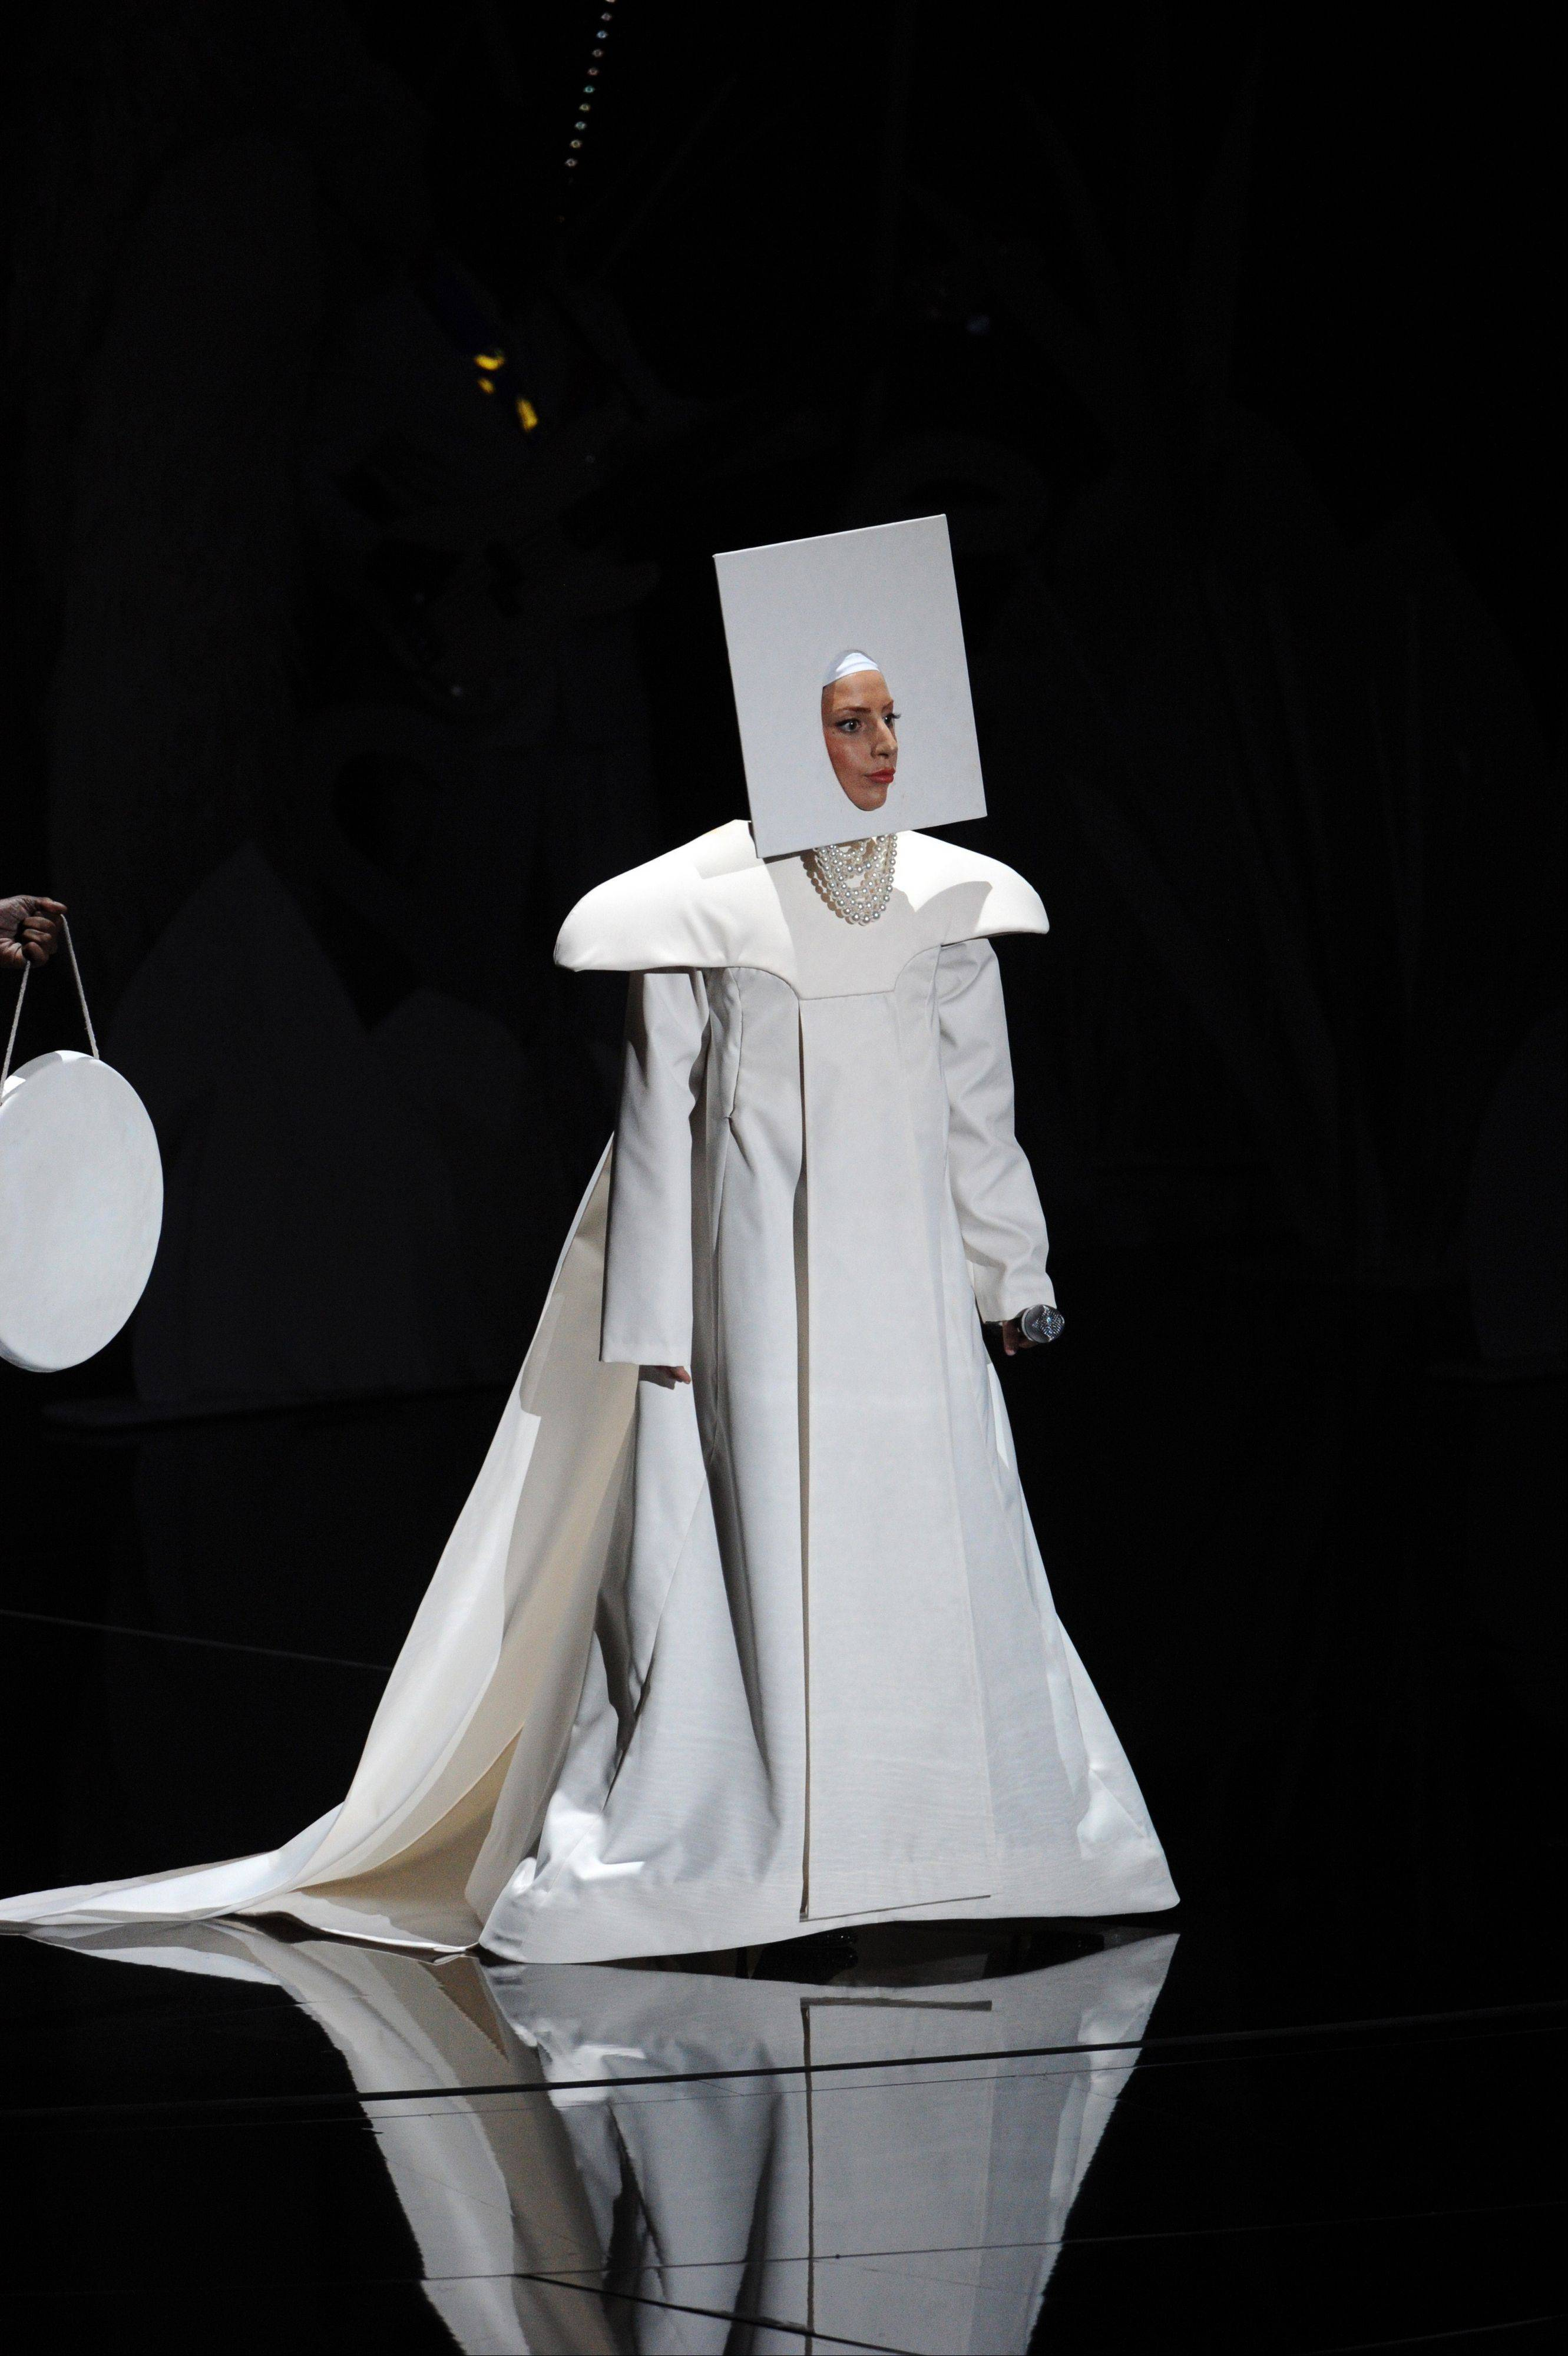 Lady Gaga performs at the MTV Video Music Awards on Sunday, Aug. 25, 2013, at the Barclays Center in the Brooklyn borough of New York.